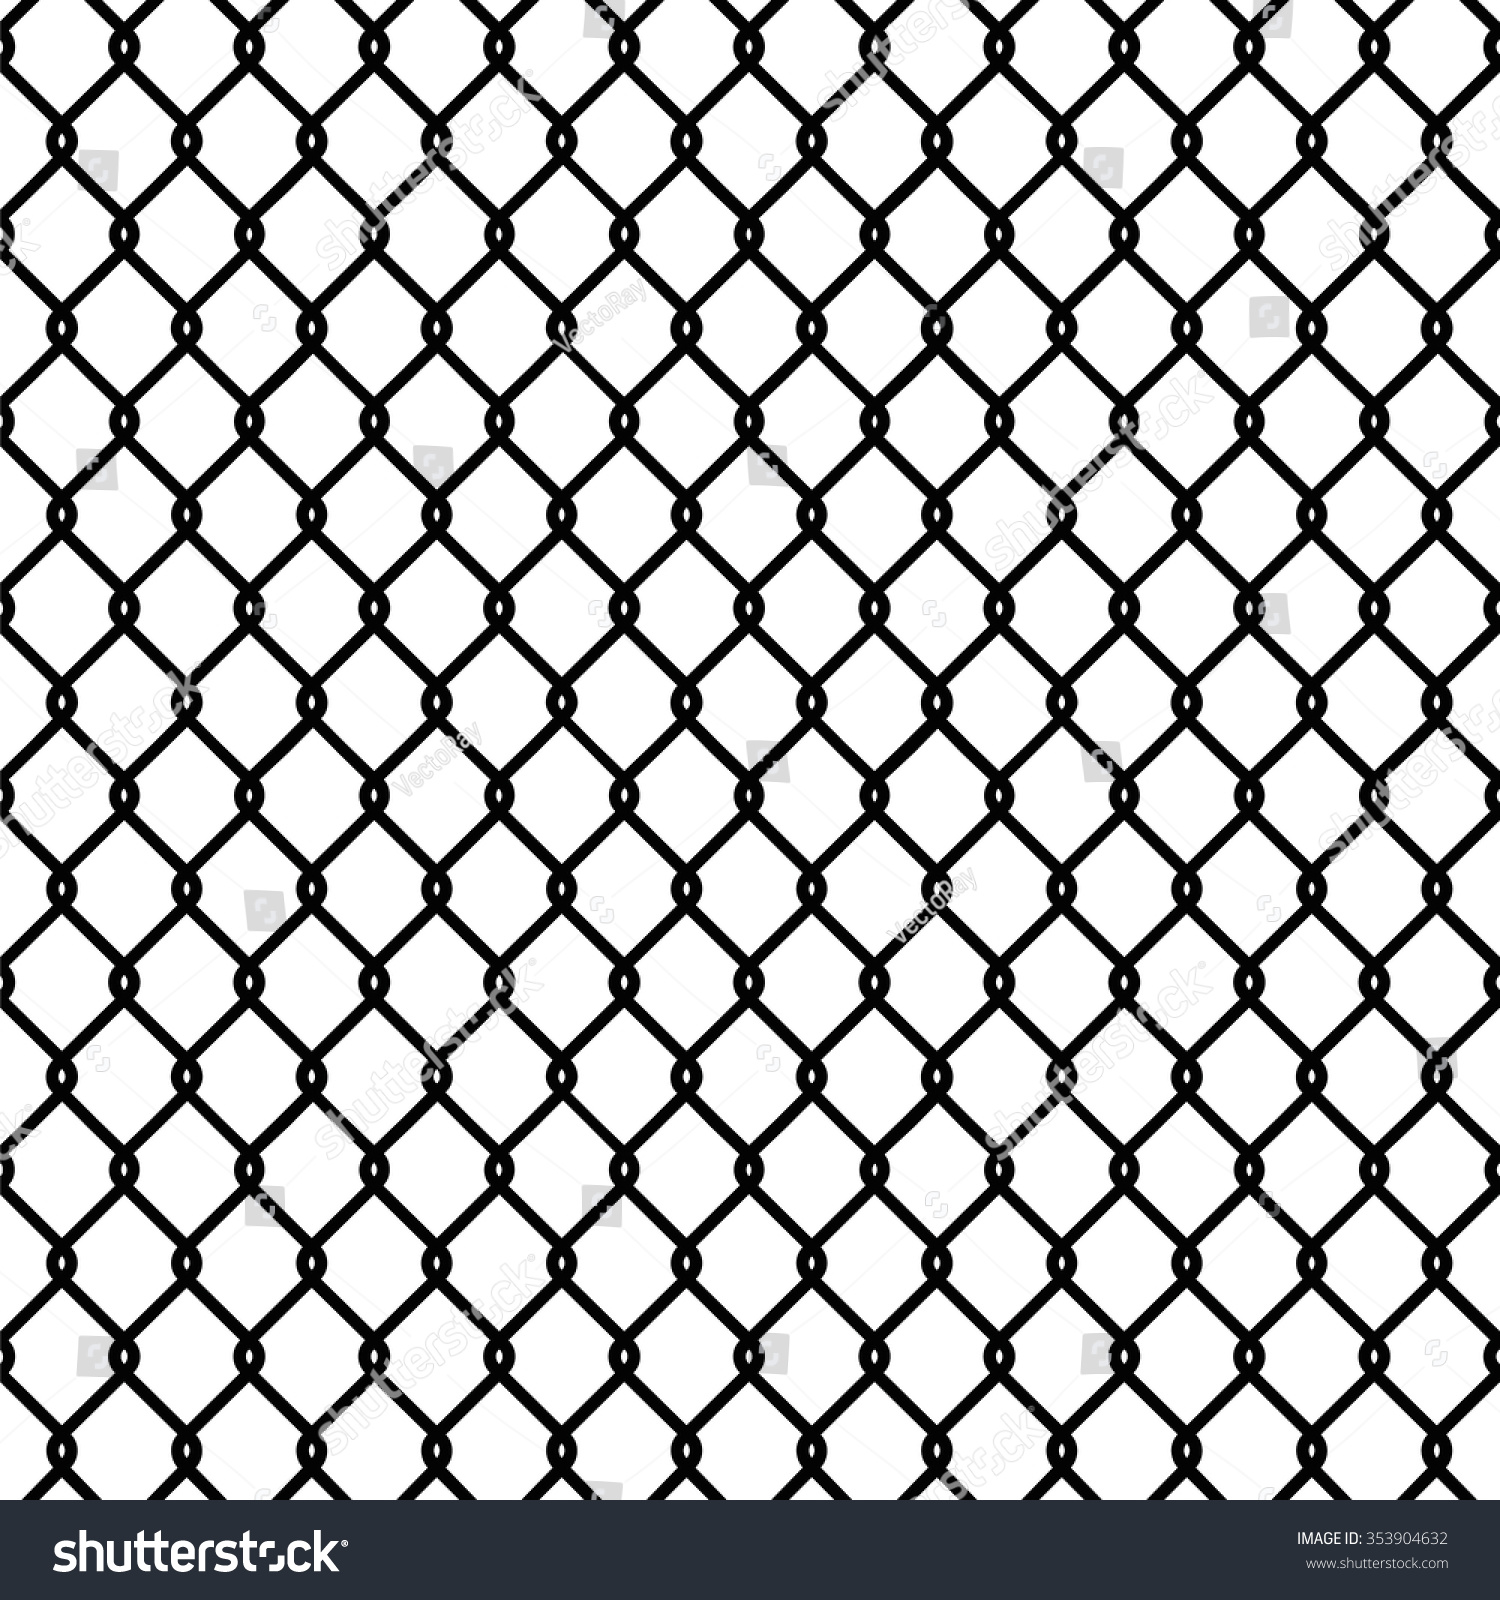 chain link fence texture. Seamless Chain Link Fence Pattern Texture Wallpaper X